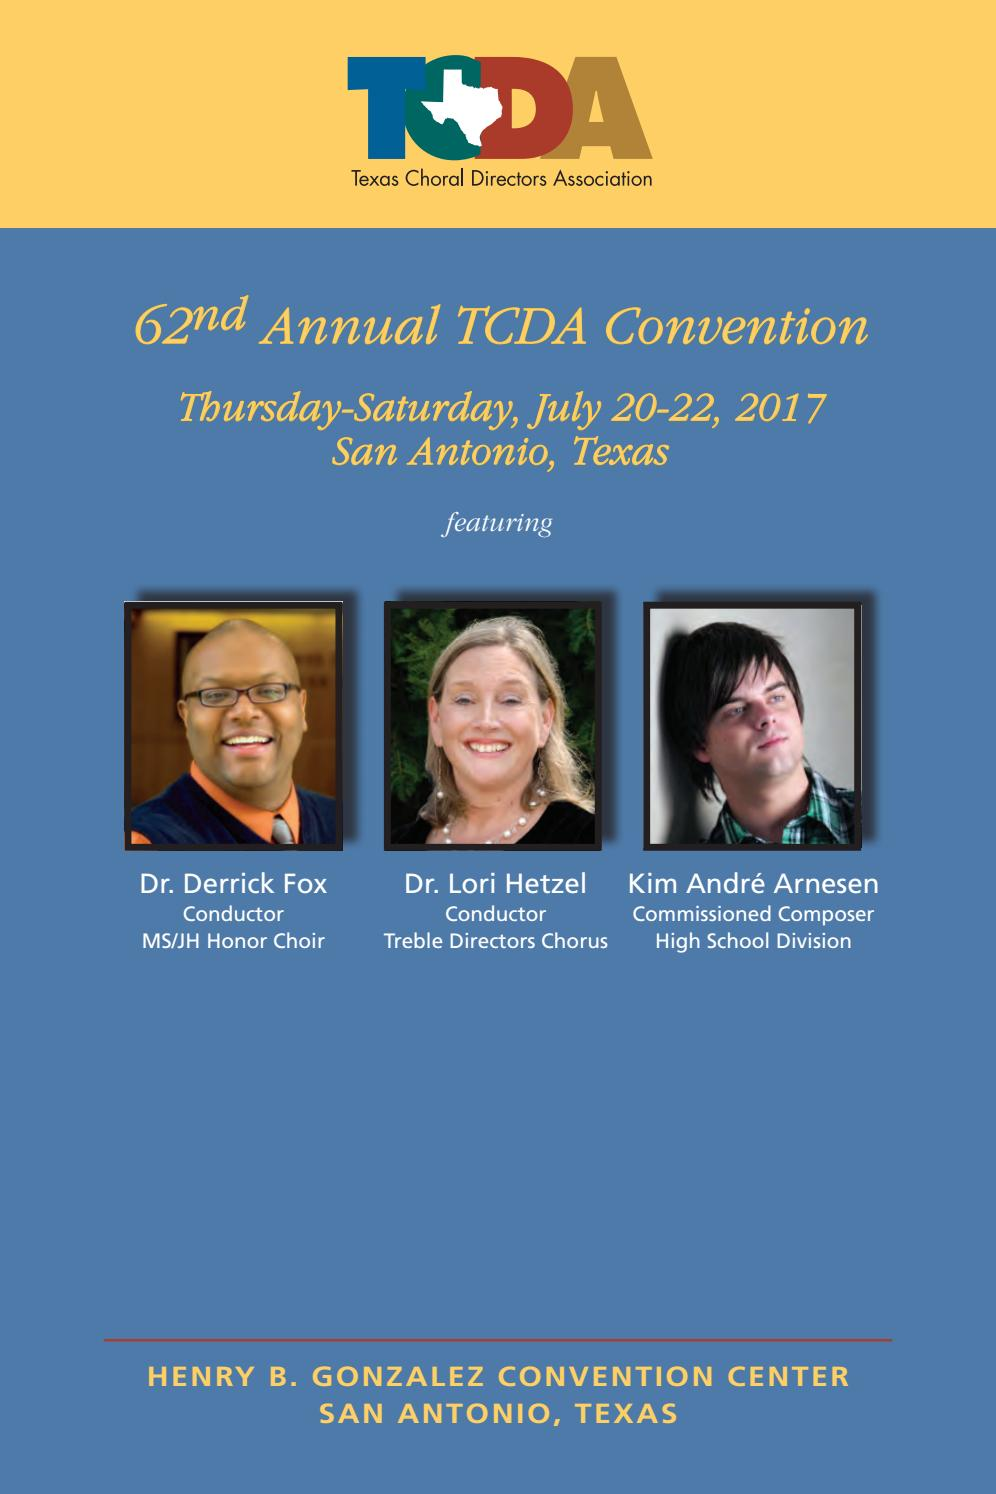 2017 TCDA Convention Program by Texas Choral Directors Association - issuu